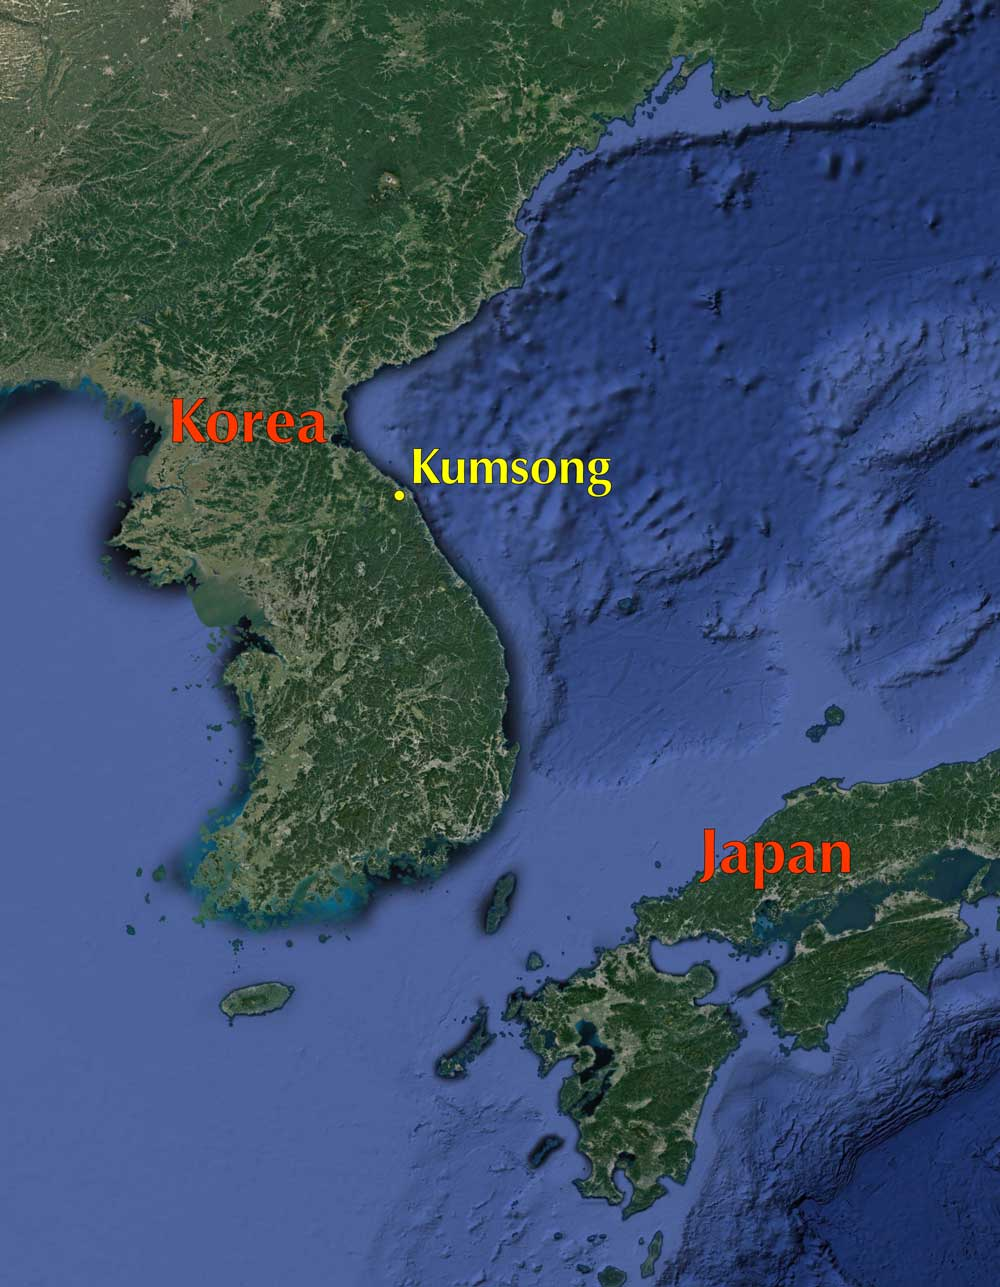 Google Map of Korea